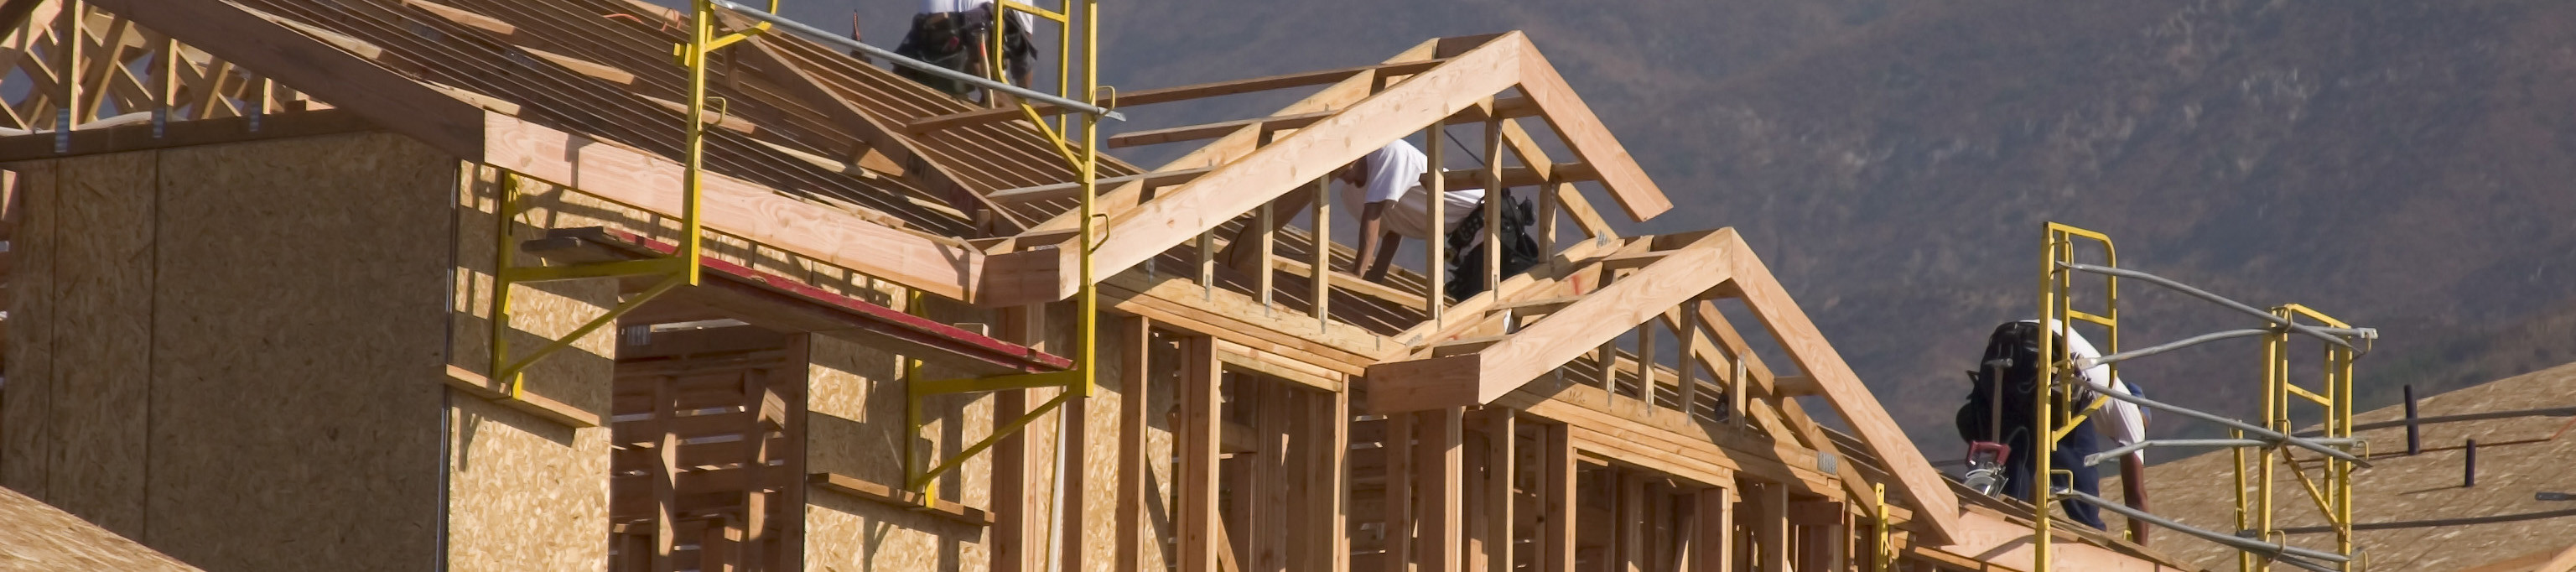 Technical Expert Witnesses including construction experts